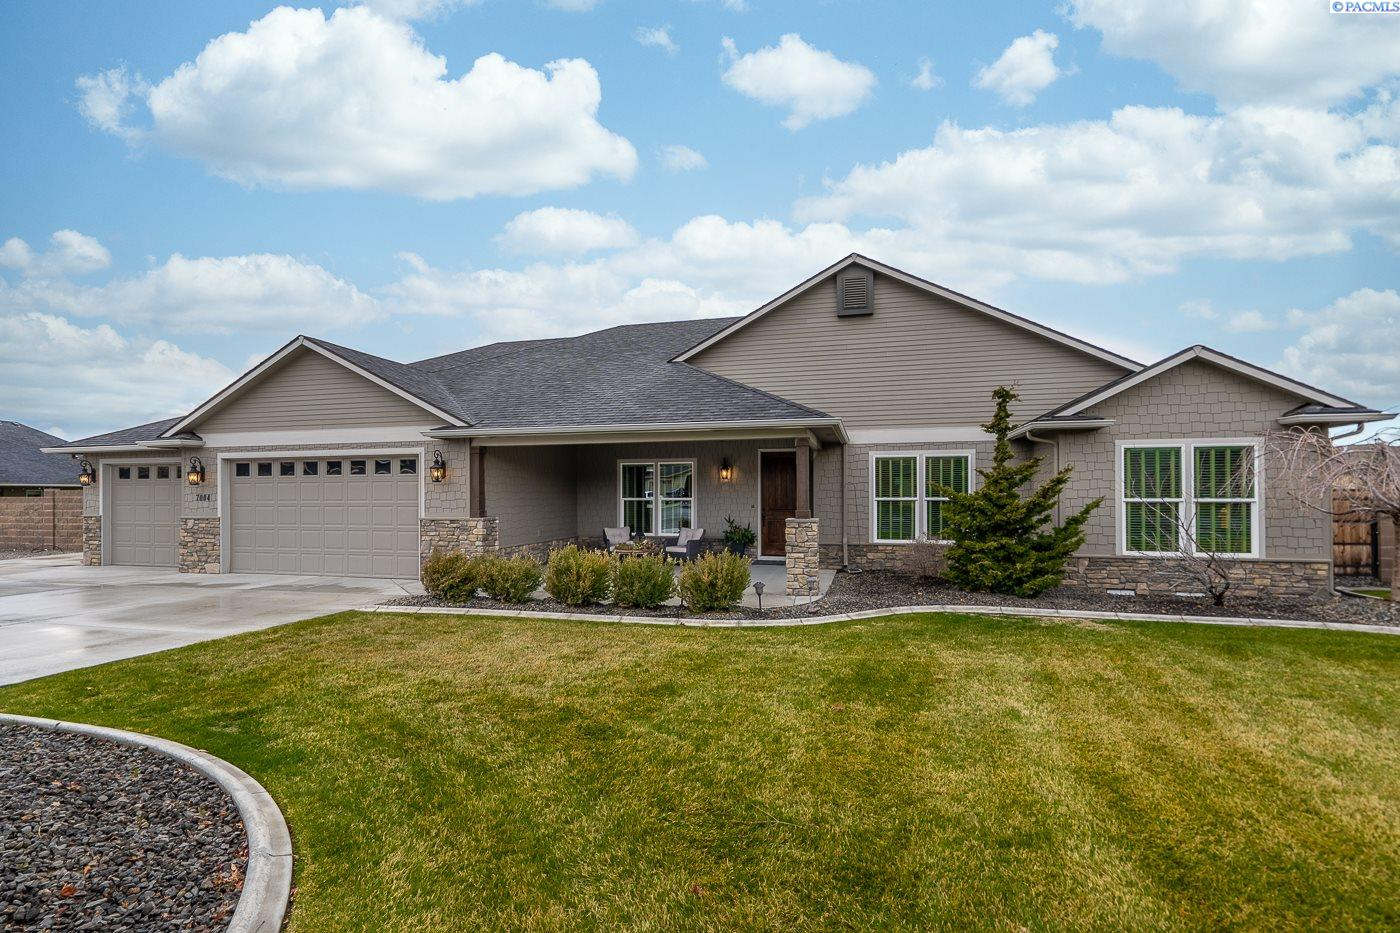 Single Family Homes for Sale at Lot 67 Furlong Lane Kennewick, Washington 99338 United States